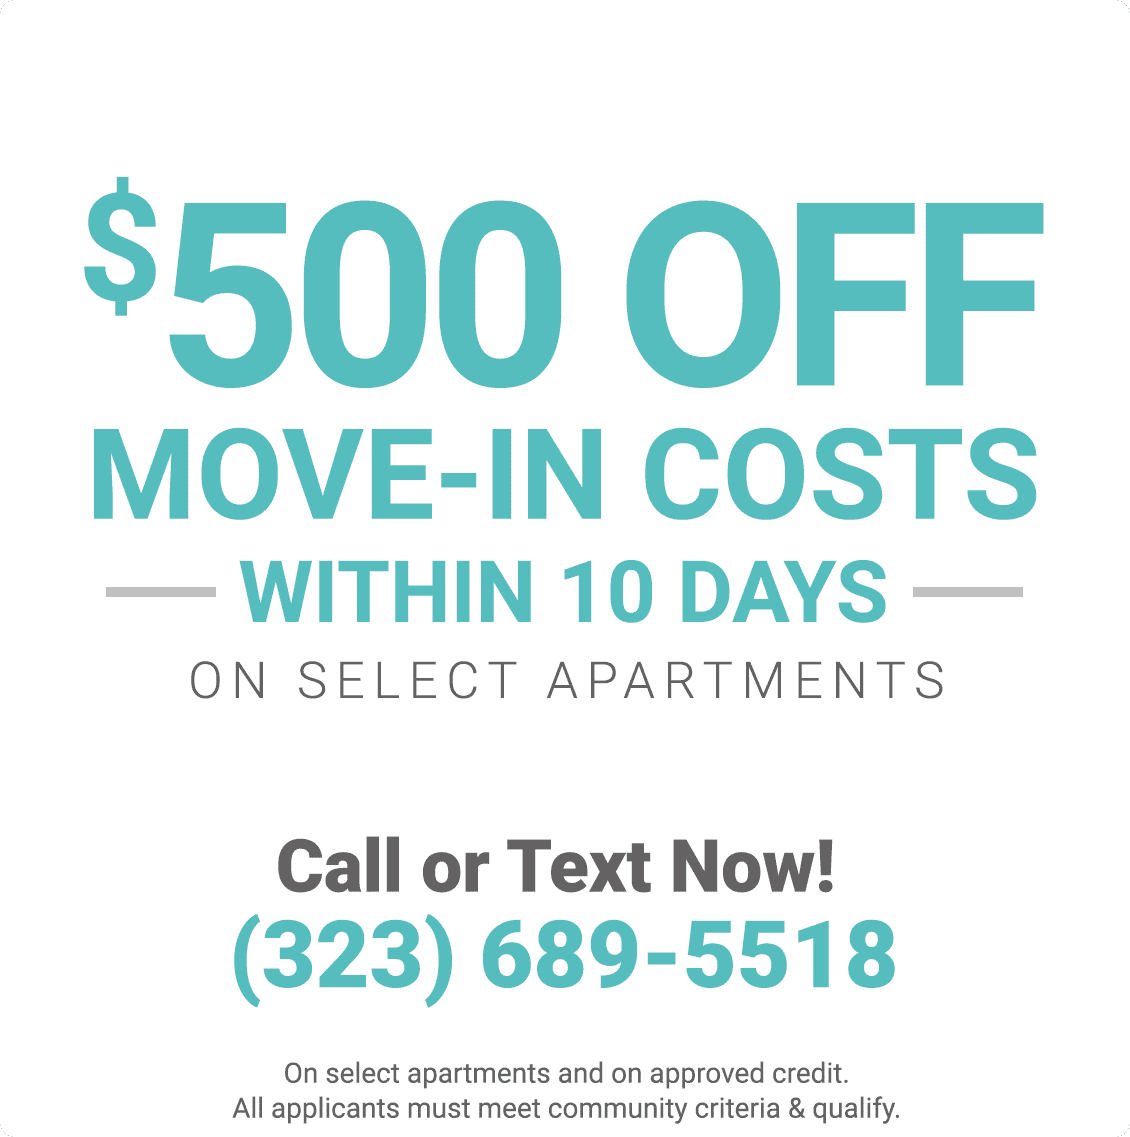 $500 off move in costs within 10 days on select apartments and on approved credit